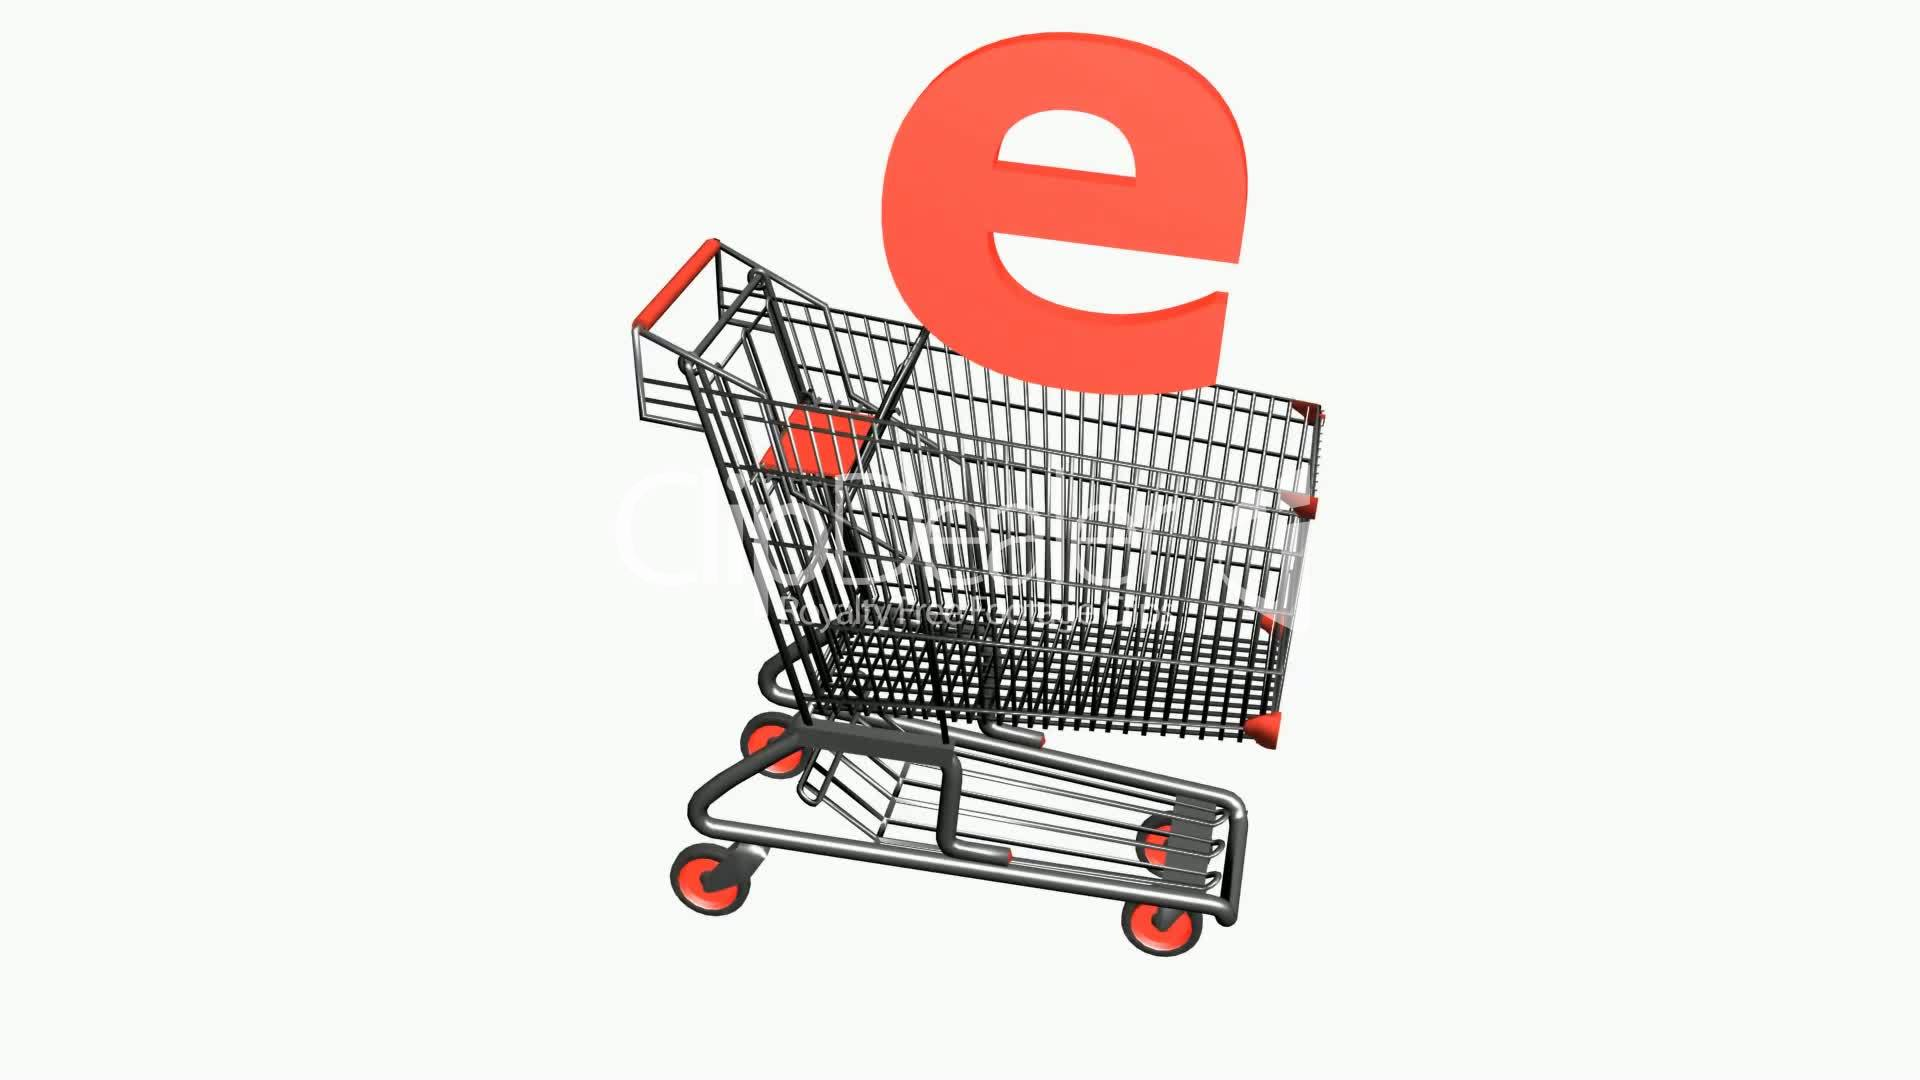 2--1127281-Shopping Cart with Letter e.Internet,network,retail,buy,isolated,cart,design,shop,basket,.jpg (1920×1080)